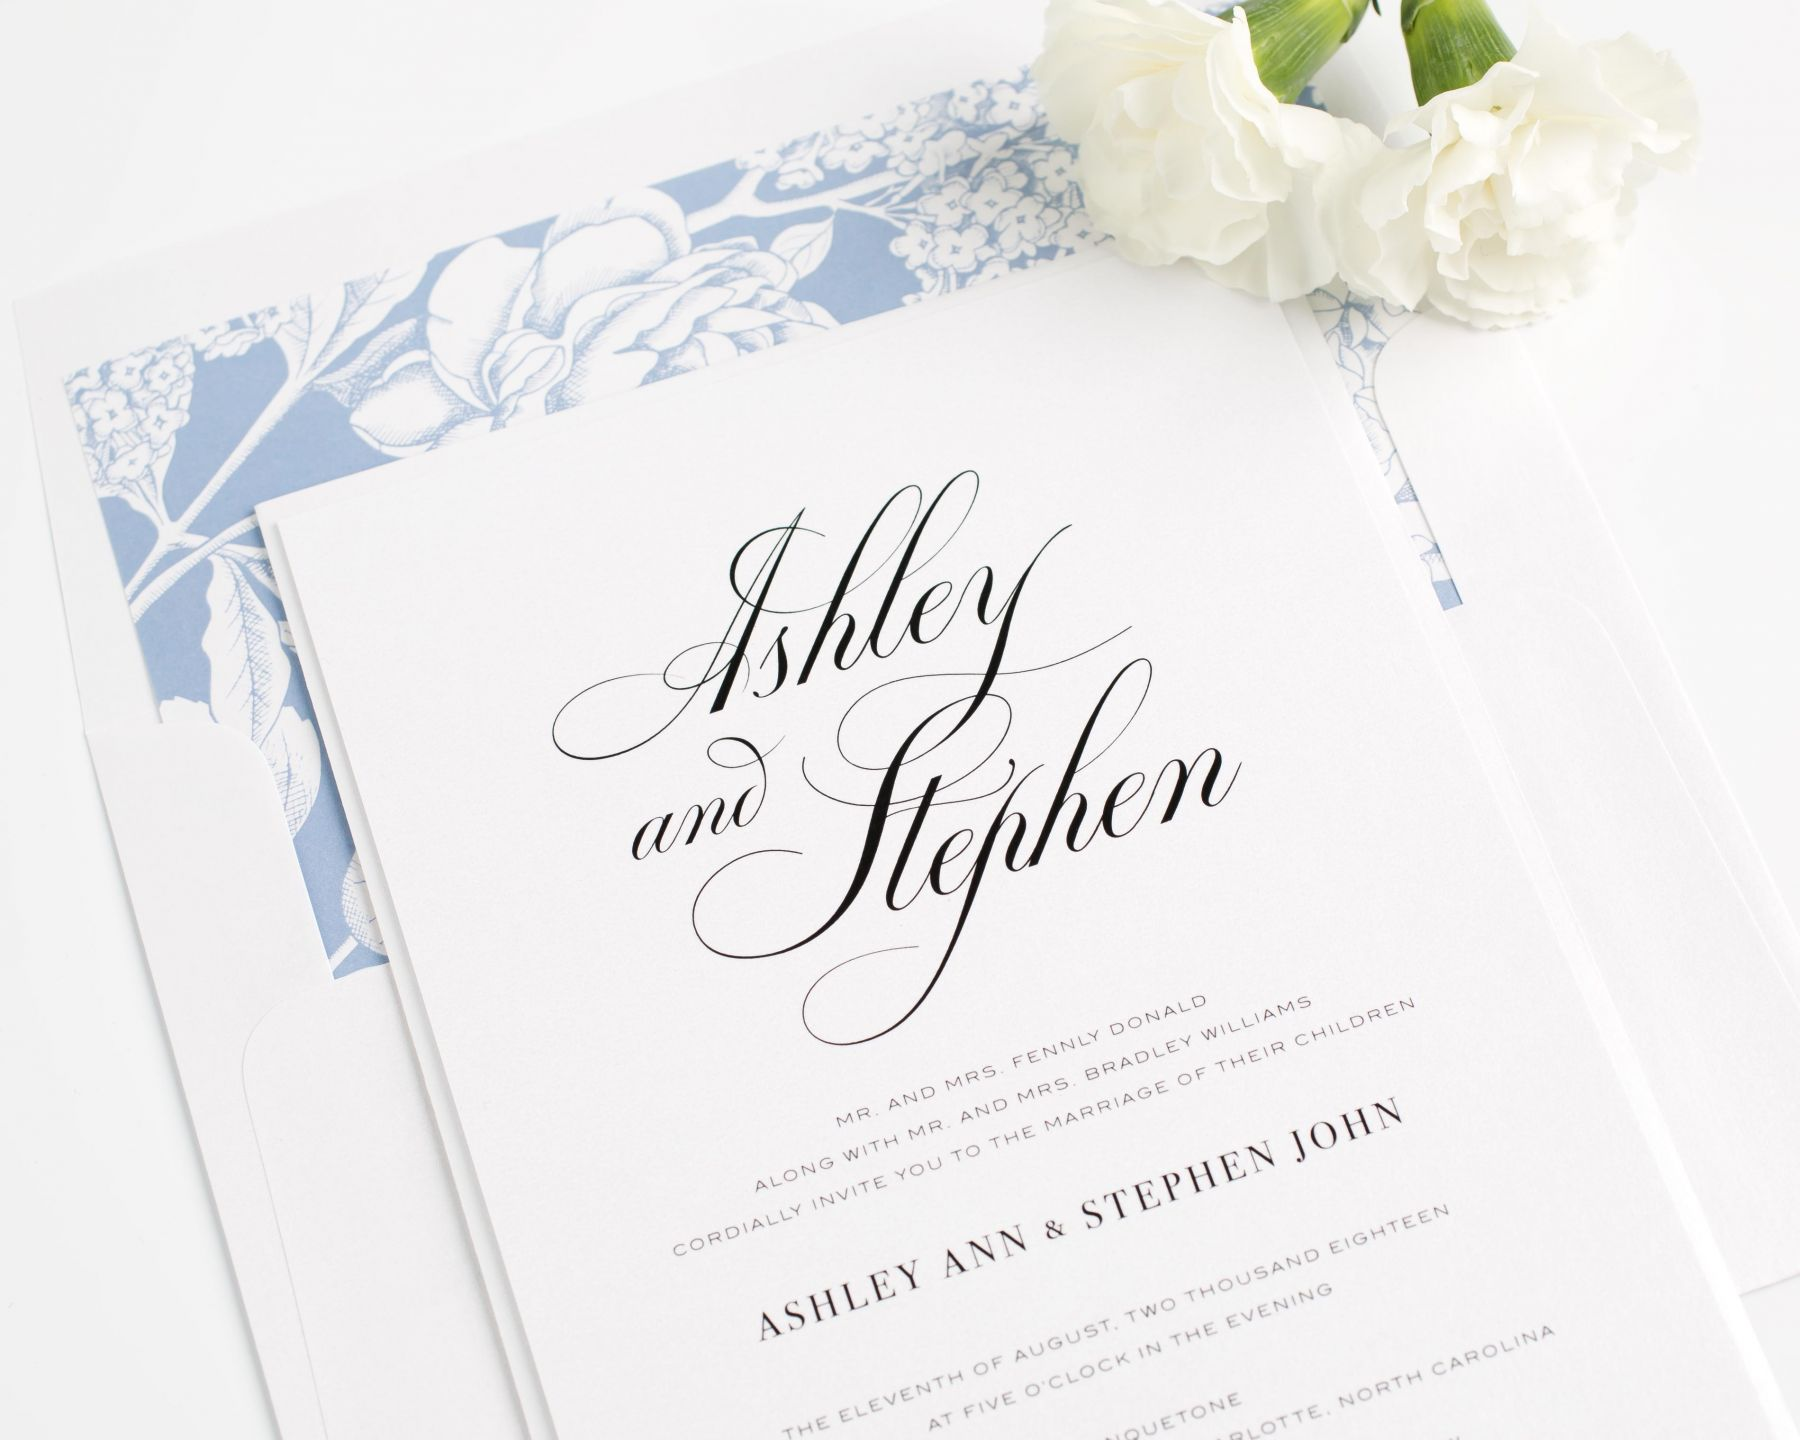 Calligraphy wedding invitations in serenity blue u wedding invitations